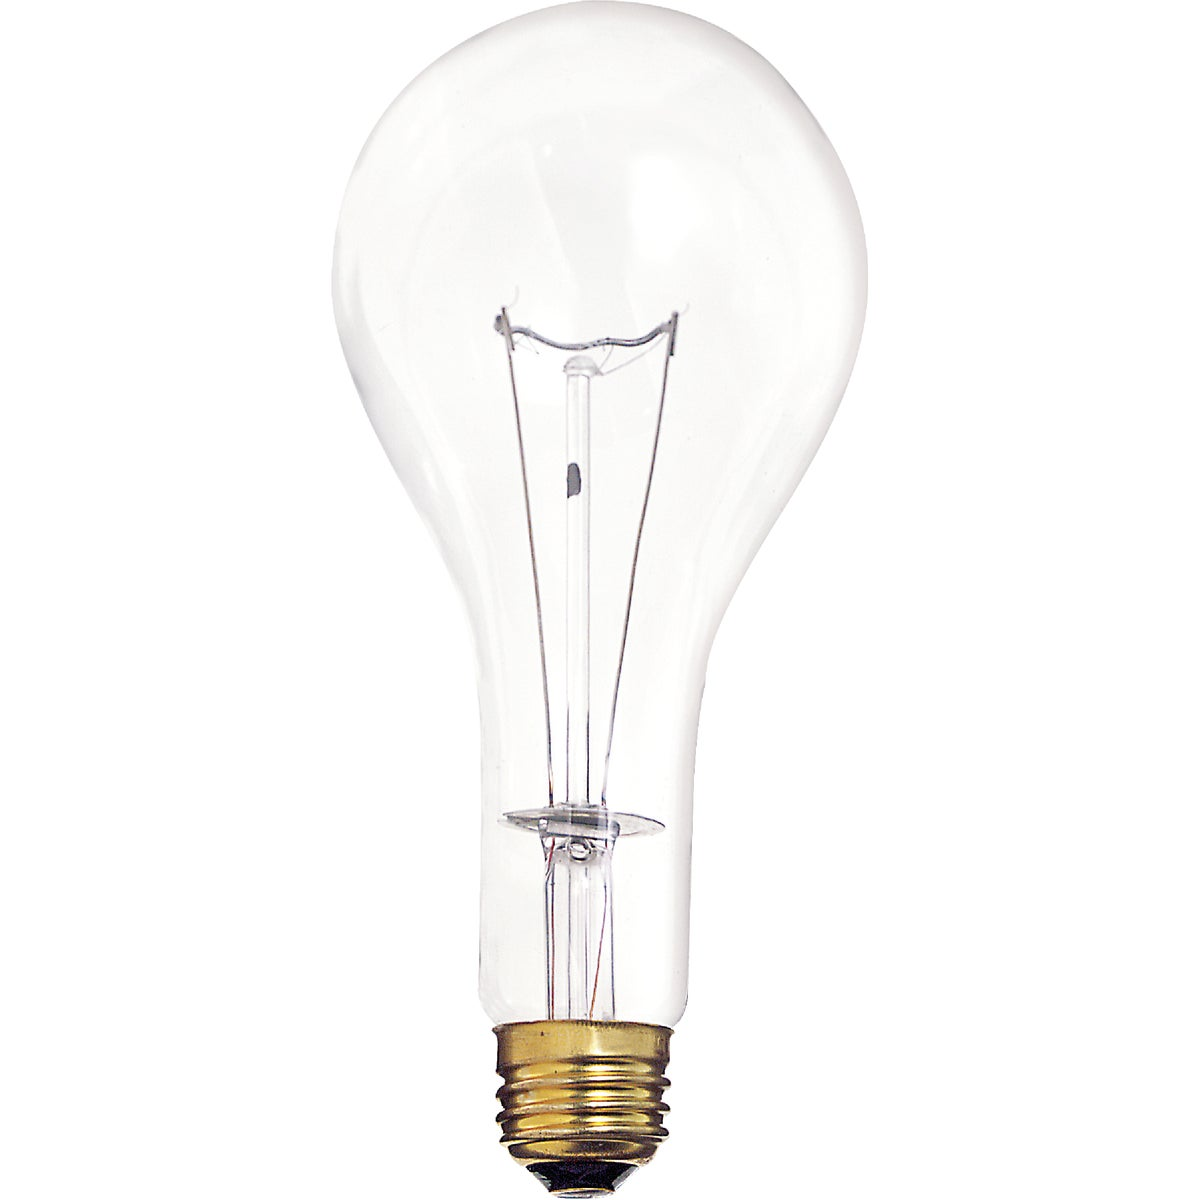 300W 130V CLEAR BULB - 73788 300M 130V by G E Lighting